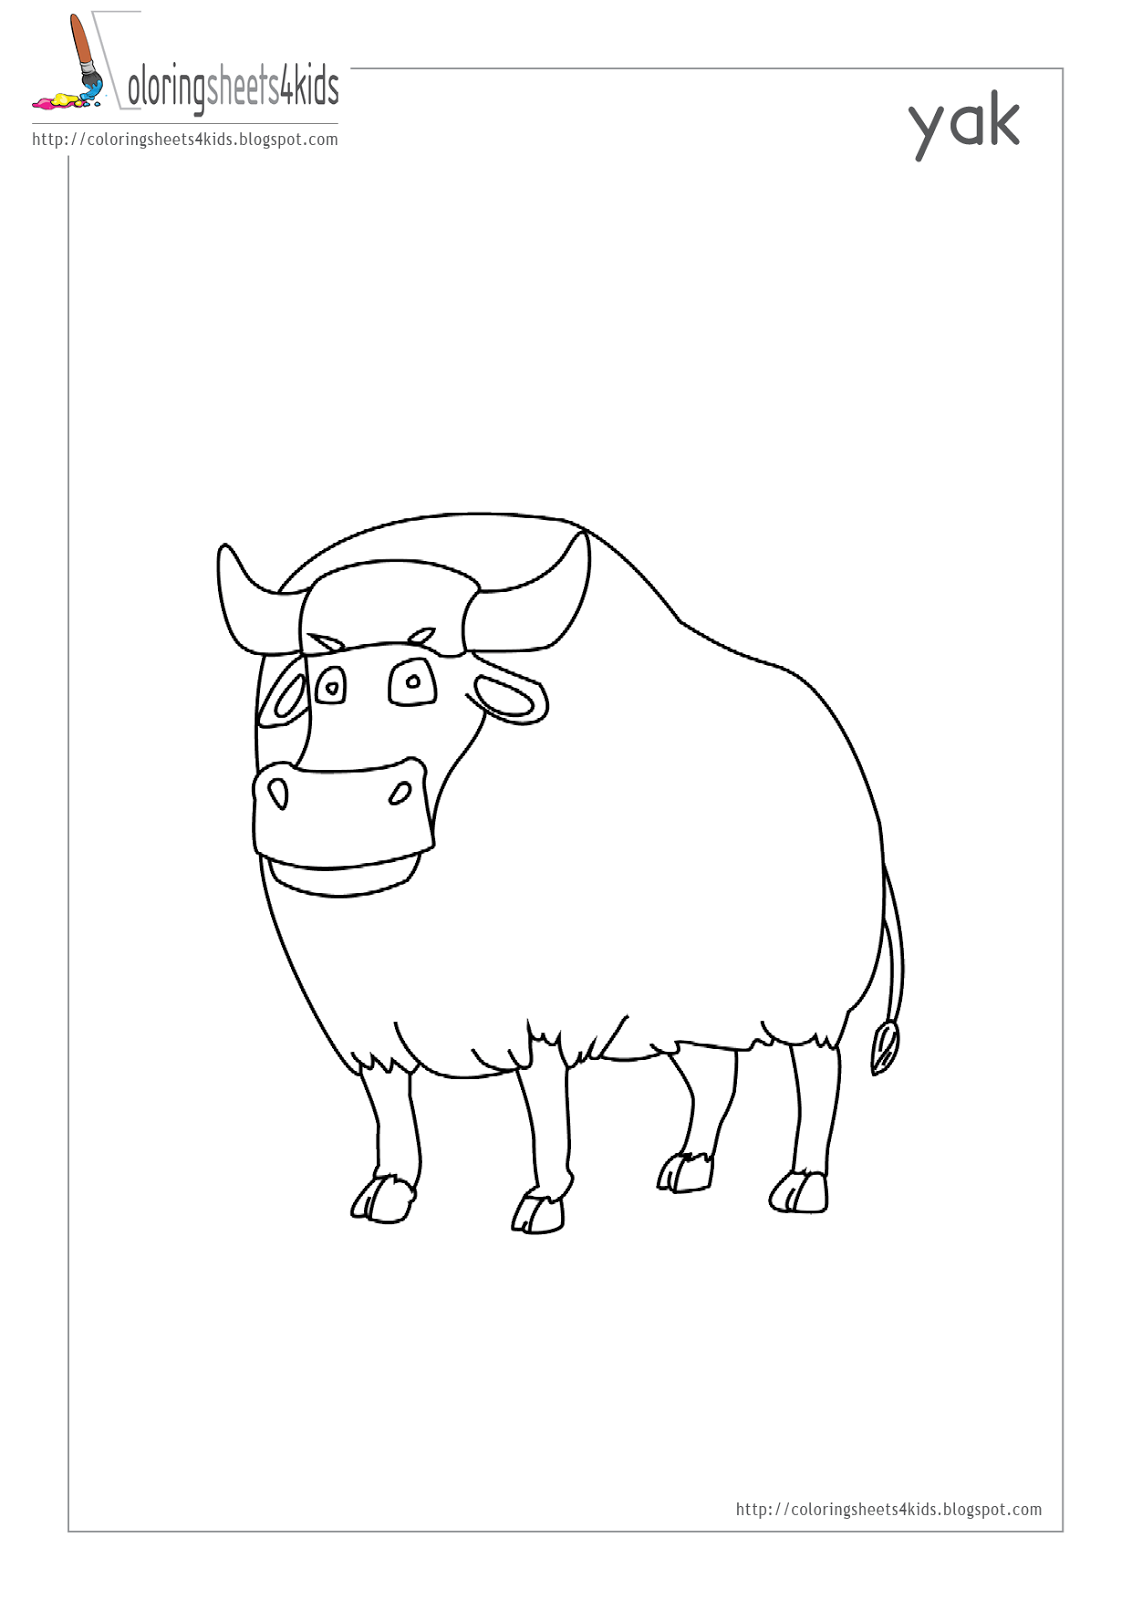 Coloring Pages Yak : Yak coloring pages az